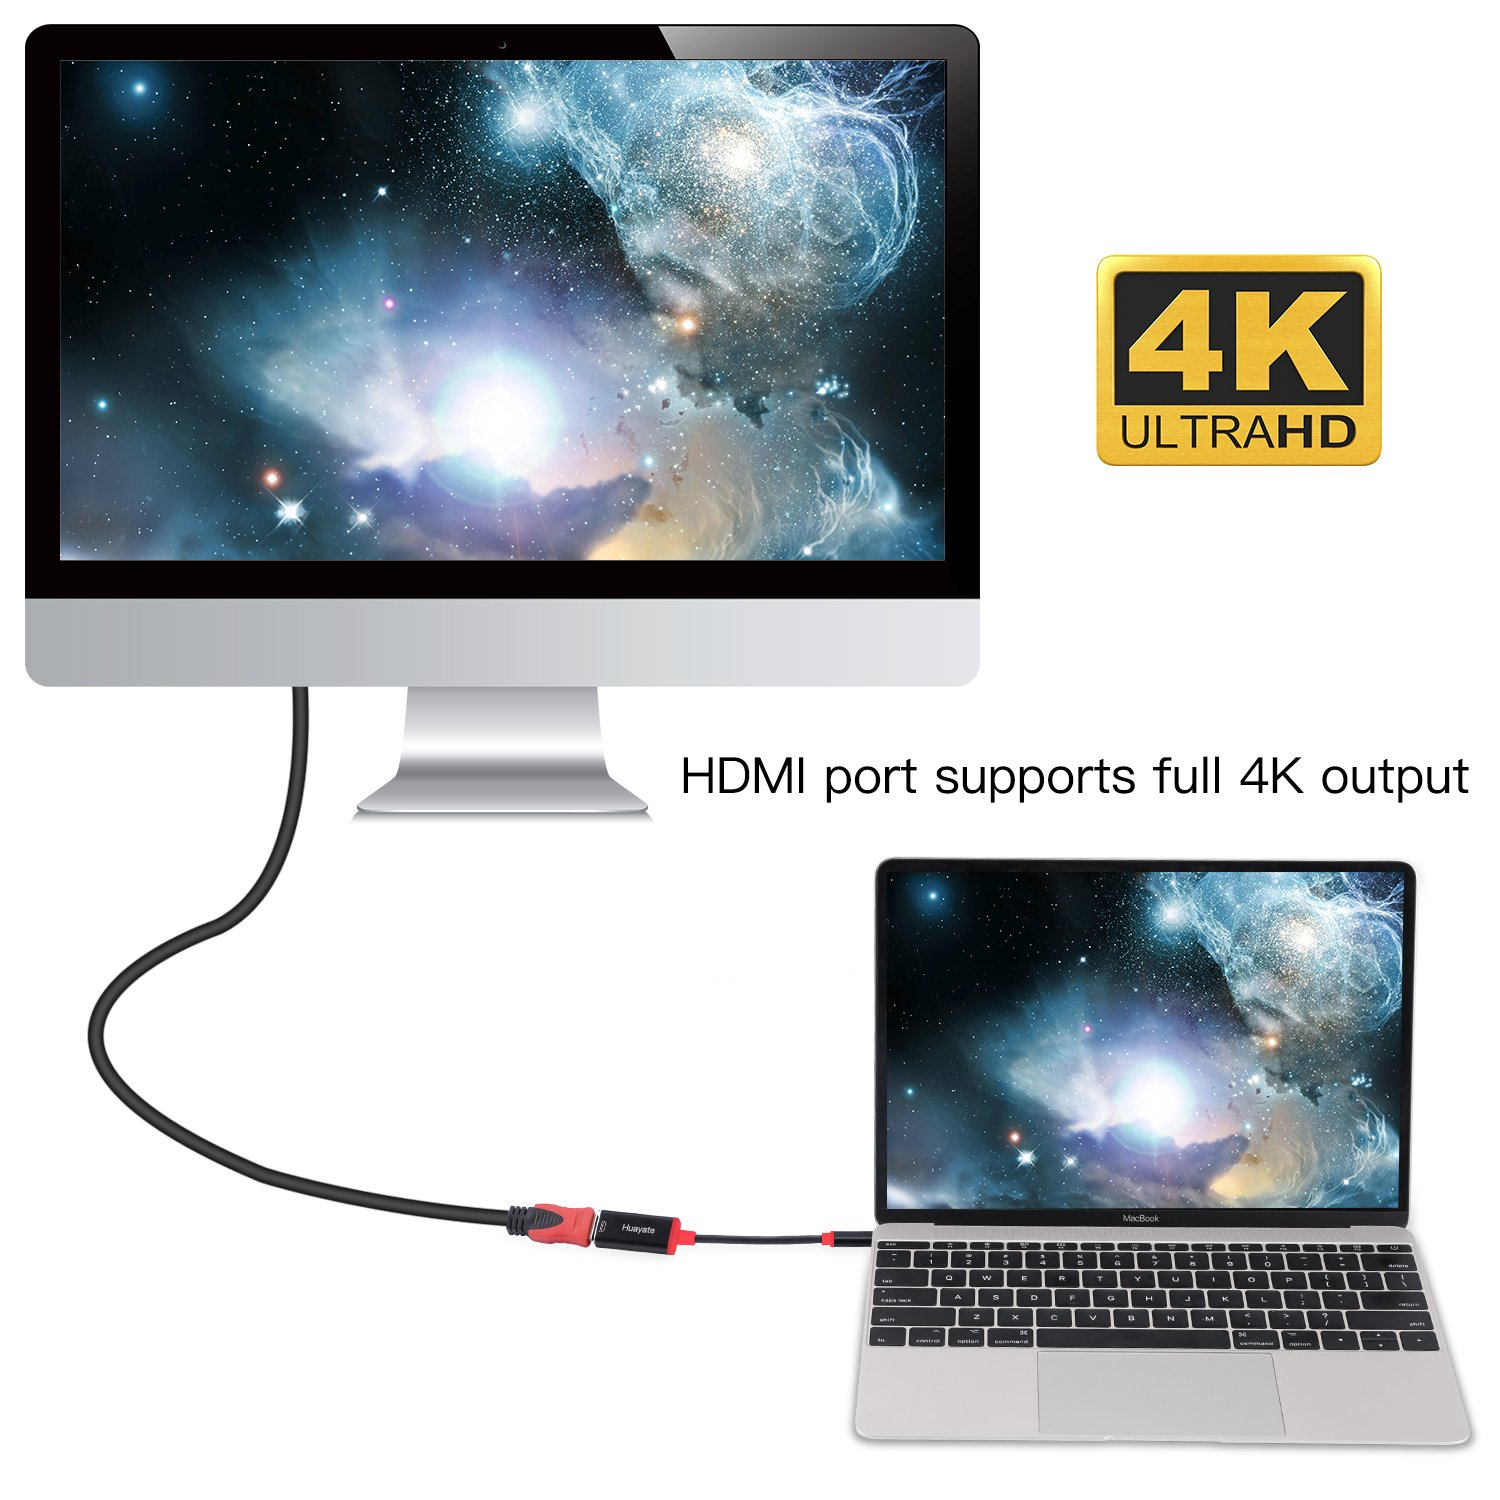 USB C to HDMI Adapter 4K Type C to HDMI Digital AV Adapter,Multi Ports Hubs with USB 3.0,HDMI and Charging Adapter for MacBook//Chromebook Pixel//Projector//Sumsang Galaxy S8//S9//Yoga 900 3 in 1